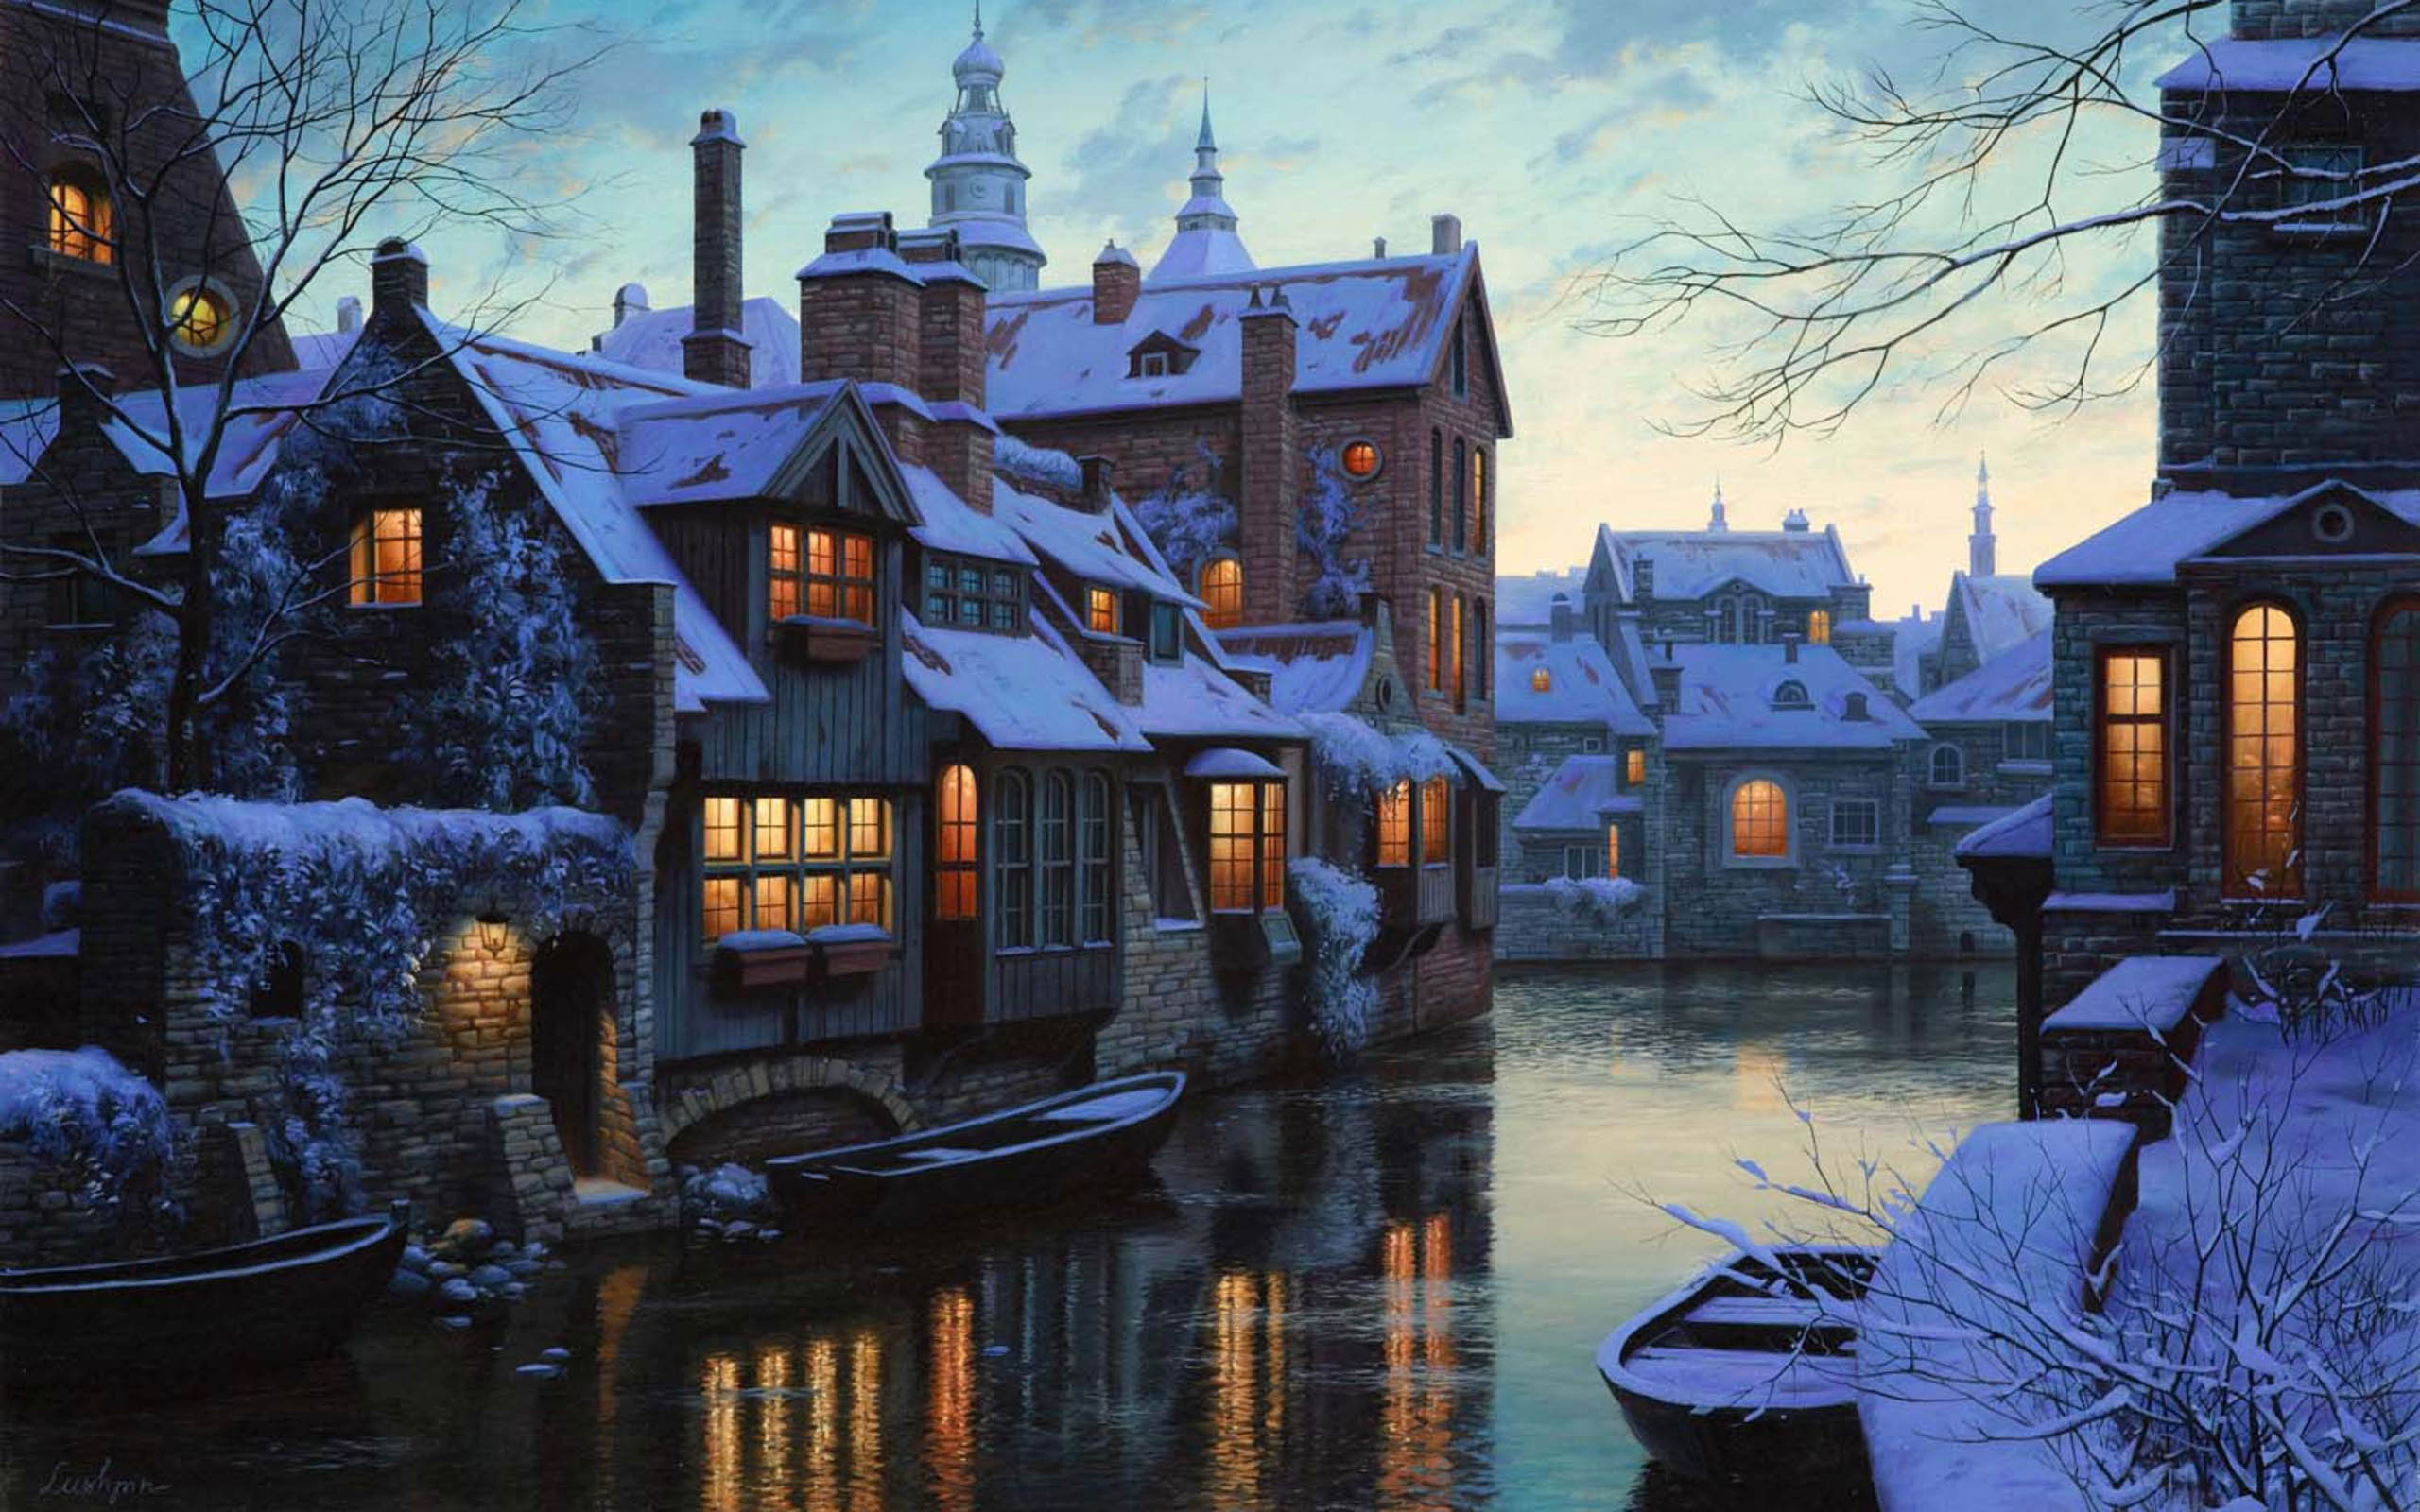 Bruges-belgium-winter-azbooking